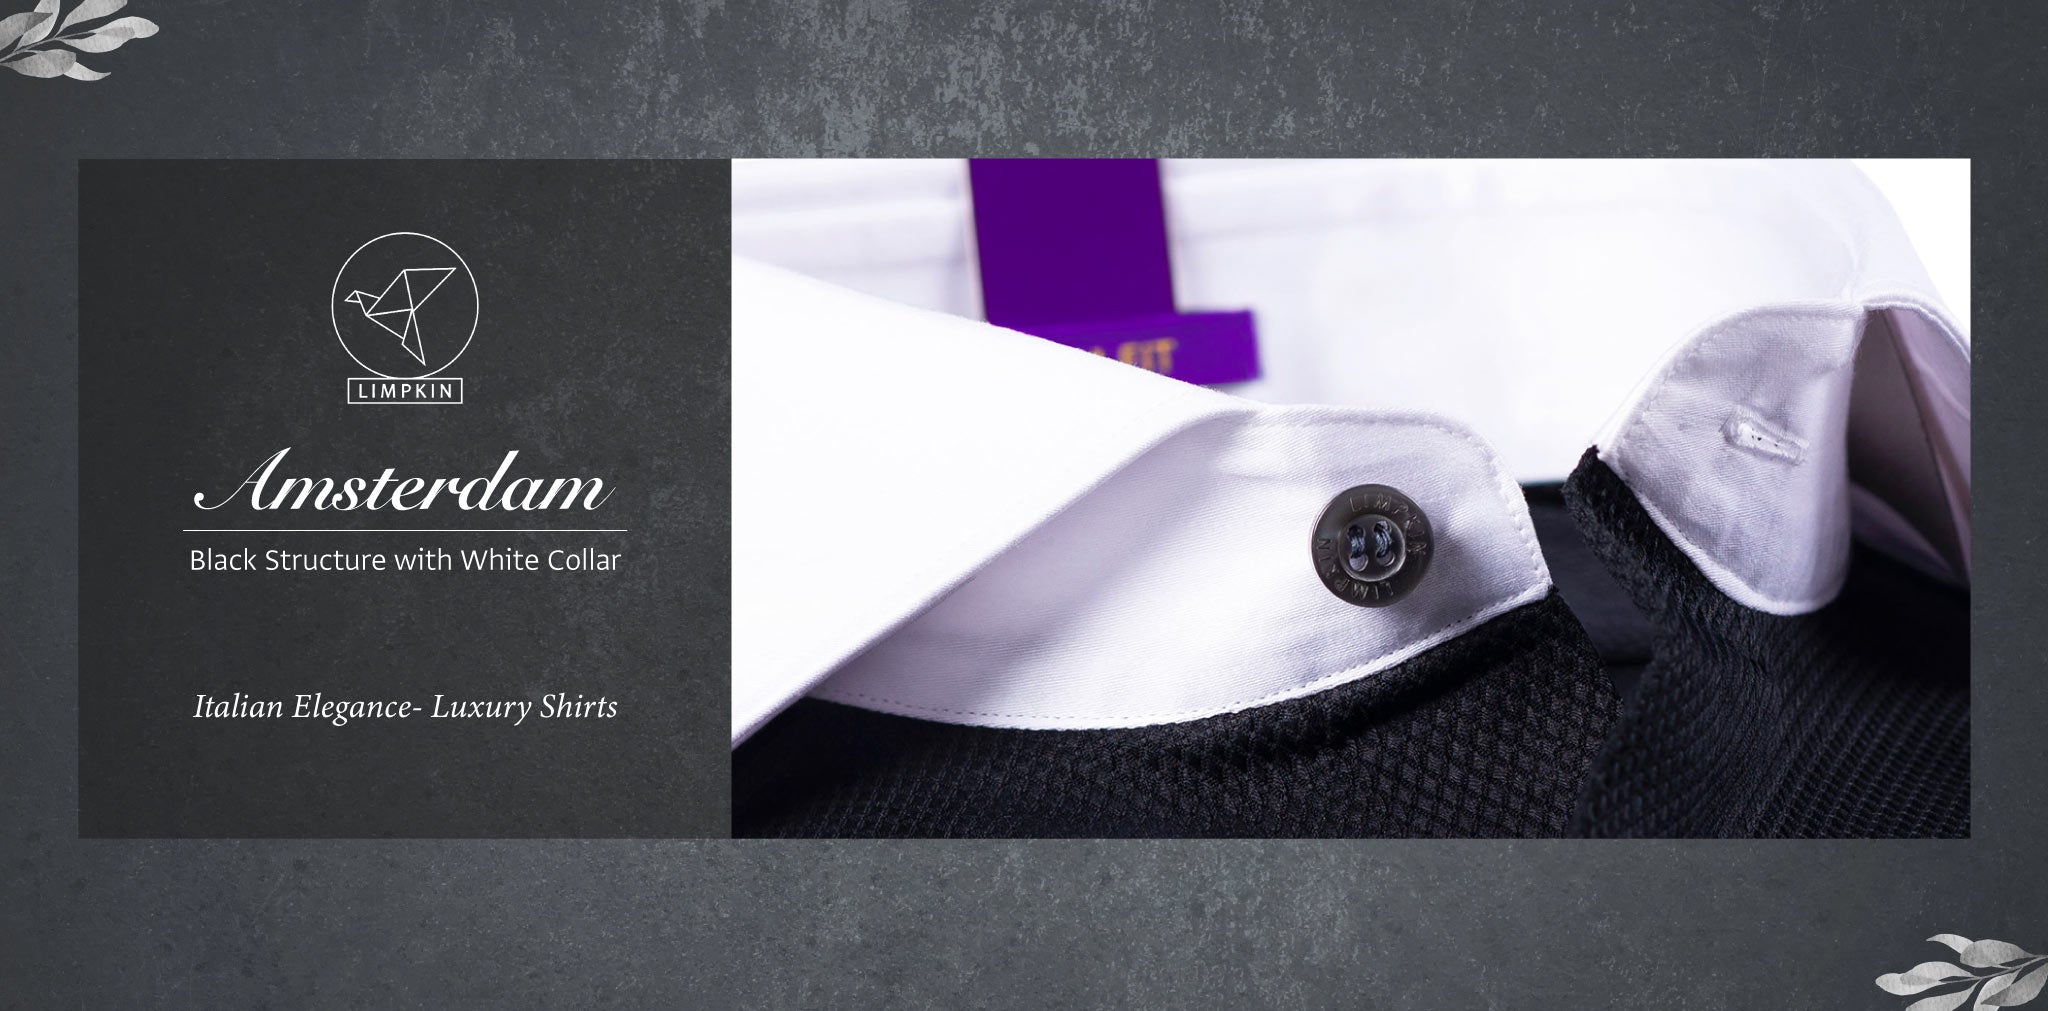 Amsterdam- Black Structure with White Collar- 2 Ply Pure Egyptian Giza Cotton- Delivery from 17th May - Banner